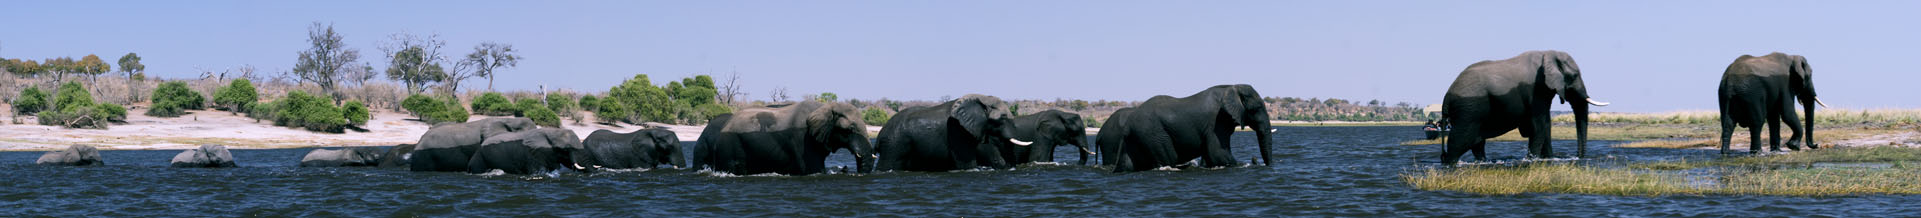 Elephants crossing the Chobe River from the Chobe National Park in Botswana